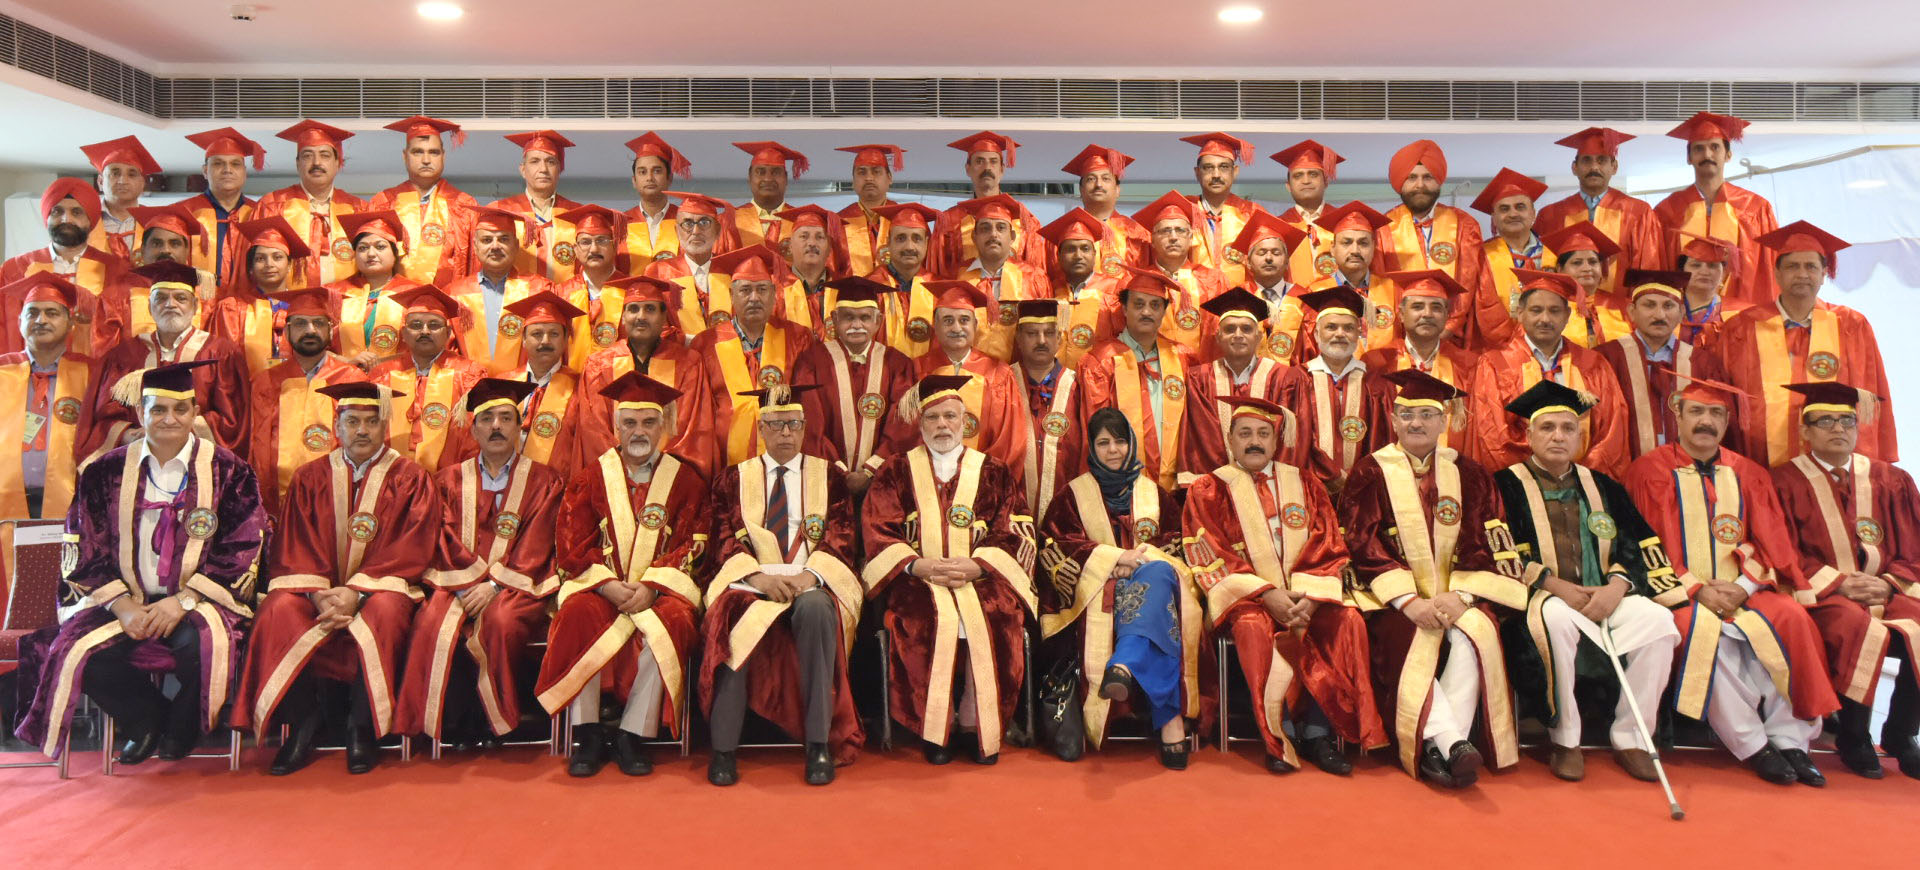 The Prime Minister, Shri Narendra Modi in a group photograph at the Convocation of the Sher-E-Kashmir University of Agricultural Sciences and Technology, in Jammu on May 19, 2018. The Governor of Jammu and Kashmir, Shri N.N. Vohra, the Minister of State for Development of North Eastern Region (I/C), Prime Minister's Office, Personnel, Public Grievances & Pensions, Atomic Energy and Space, Dr. Jitendra Singh, the Chief Minister of Jammu and Kashmir, Ms. Mehbooba Mufti and other dignitaries are also seen.